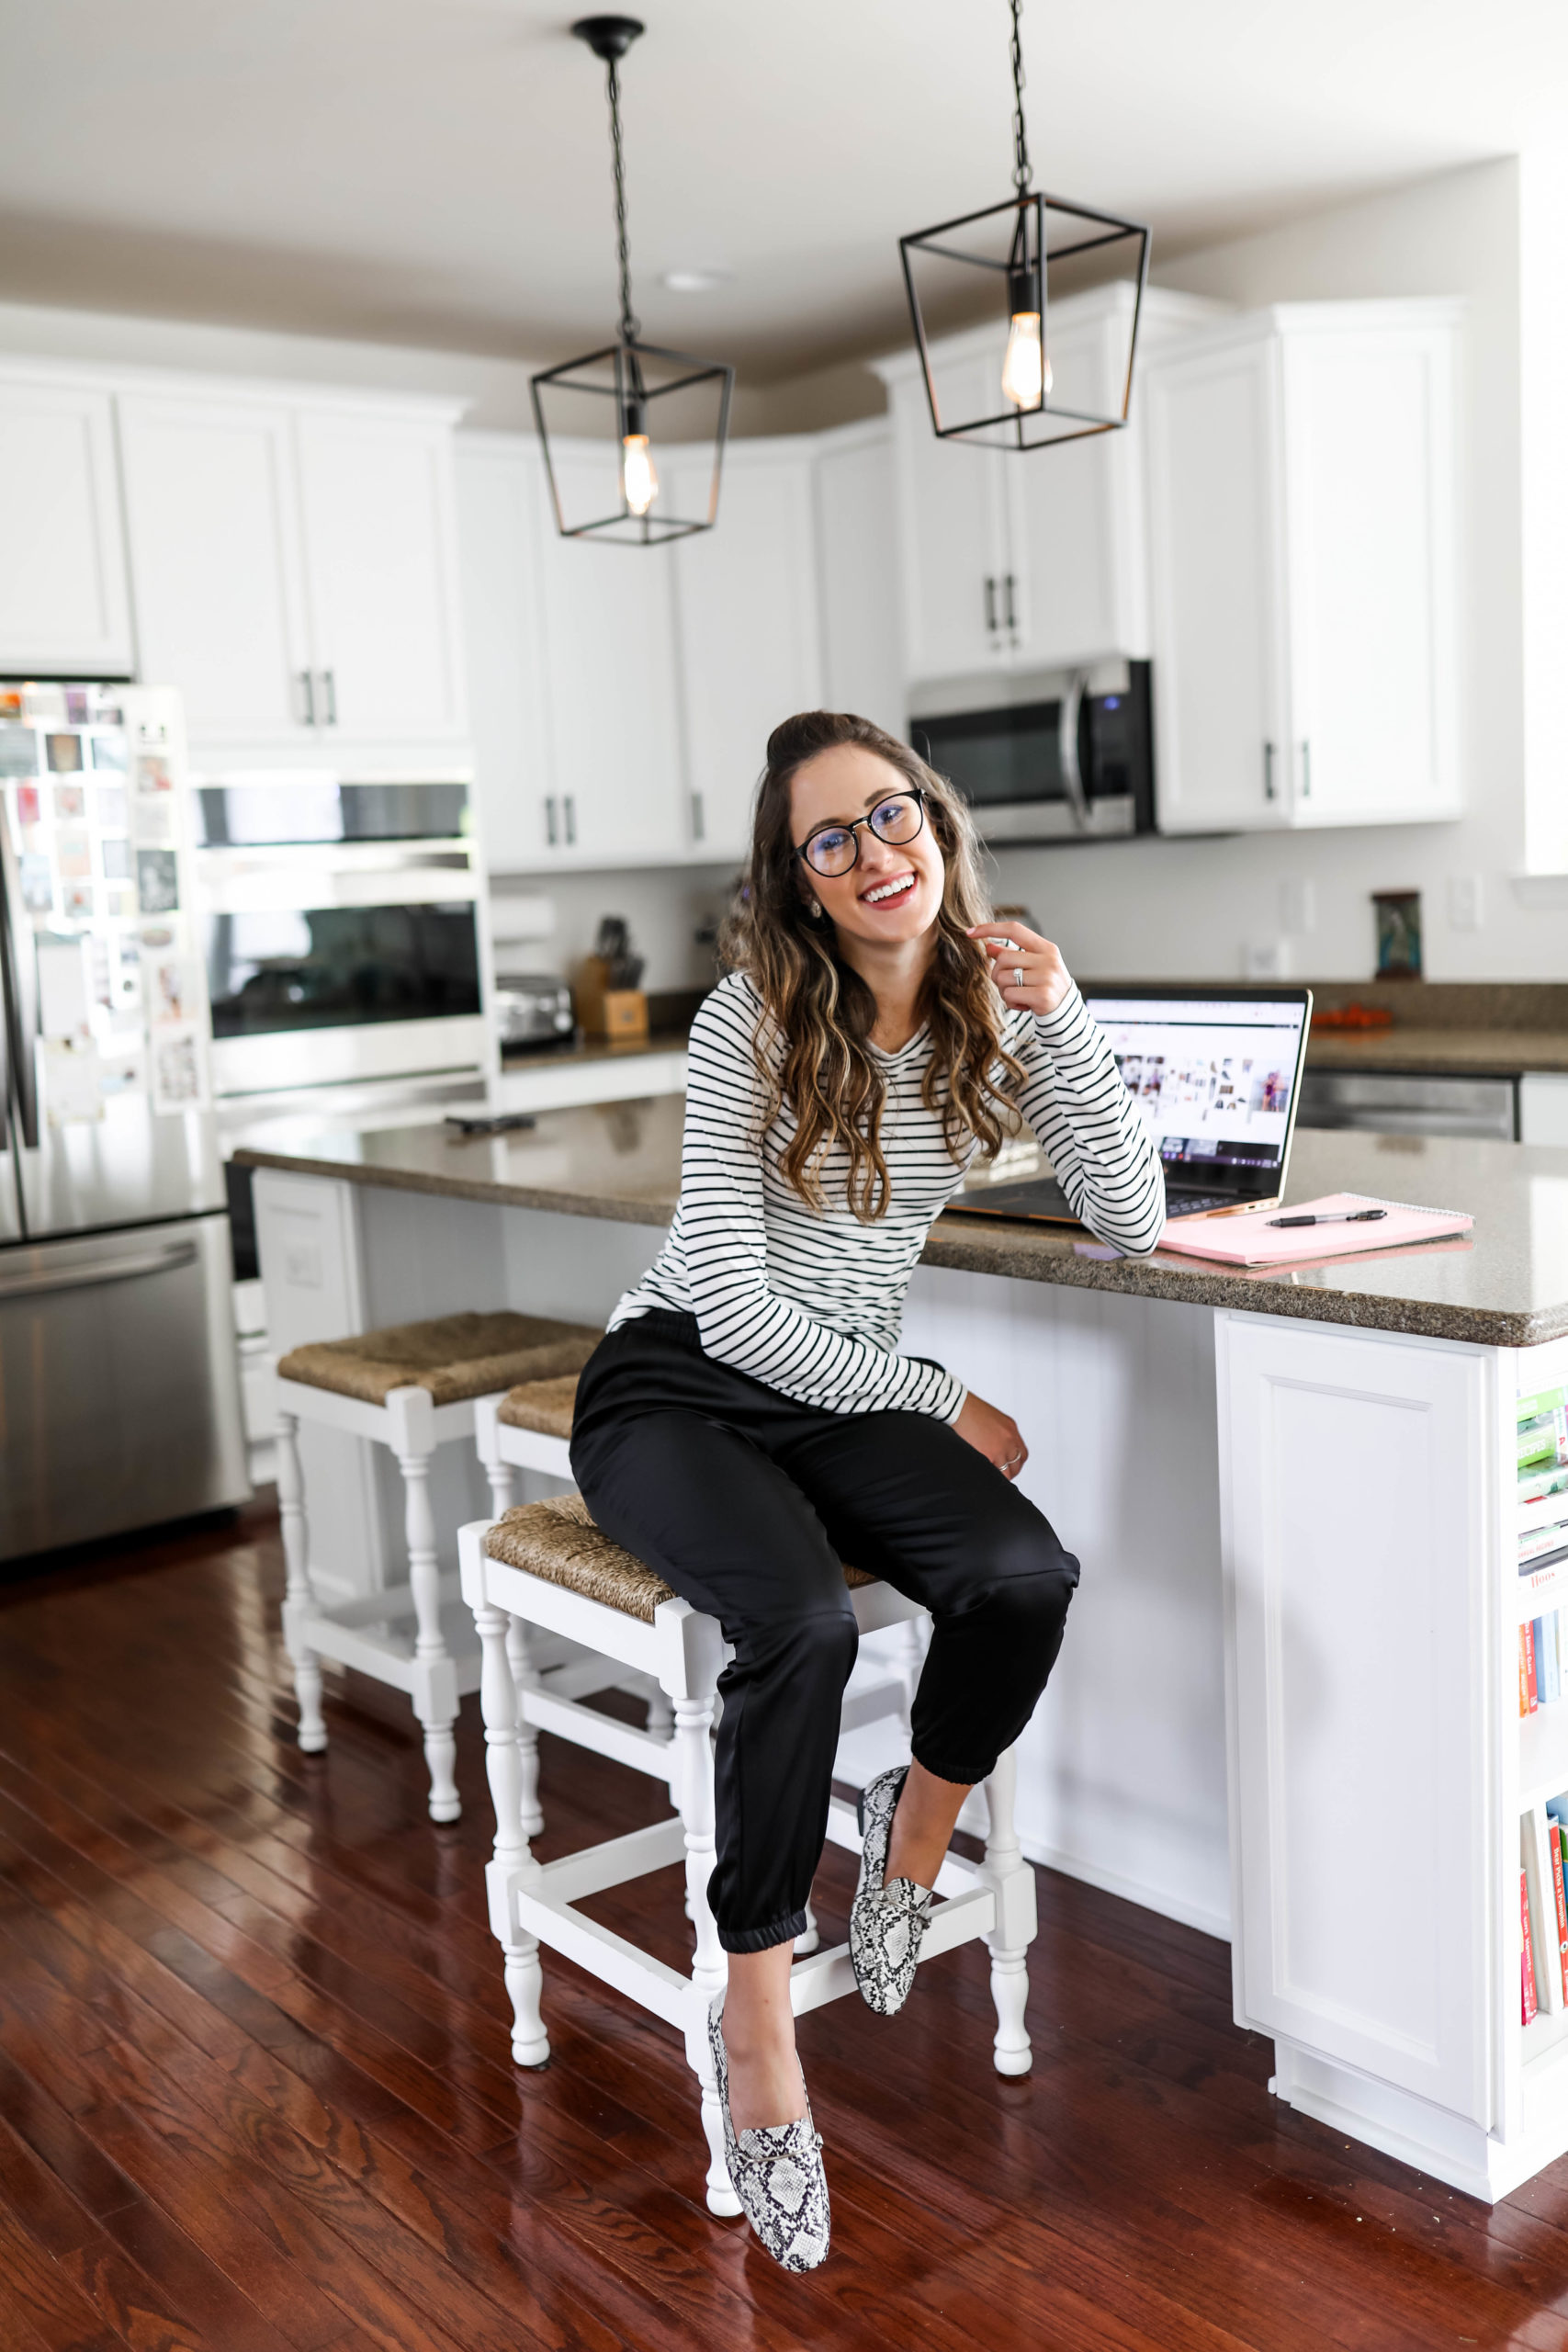 WORK-FROM-HOME STYLE GUIDE from the Nordstrom Anniversary Sale - The Best COMFY Workwear on sale now! - on Coming Up Roses